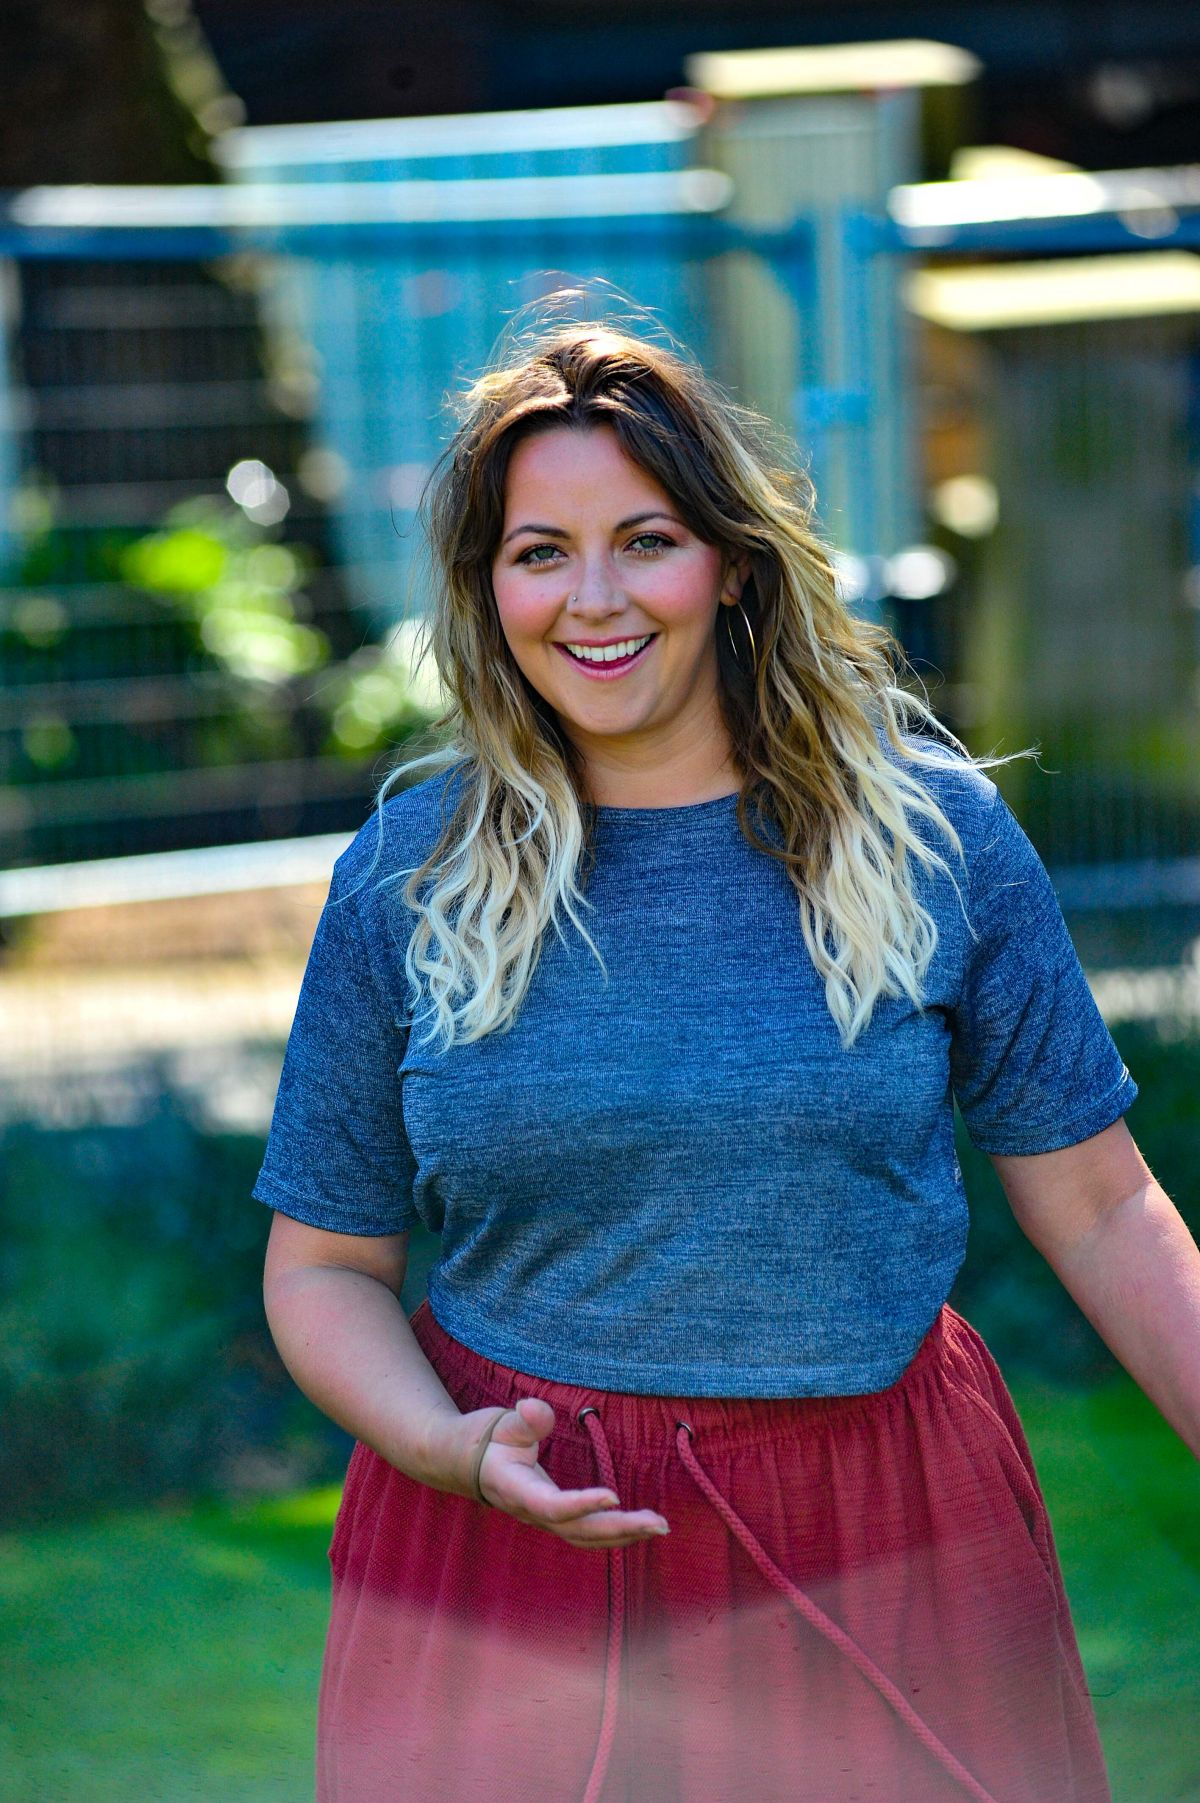 charlotte church - photo #1